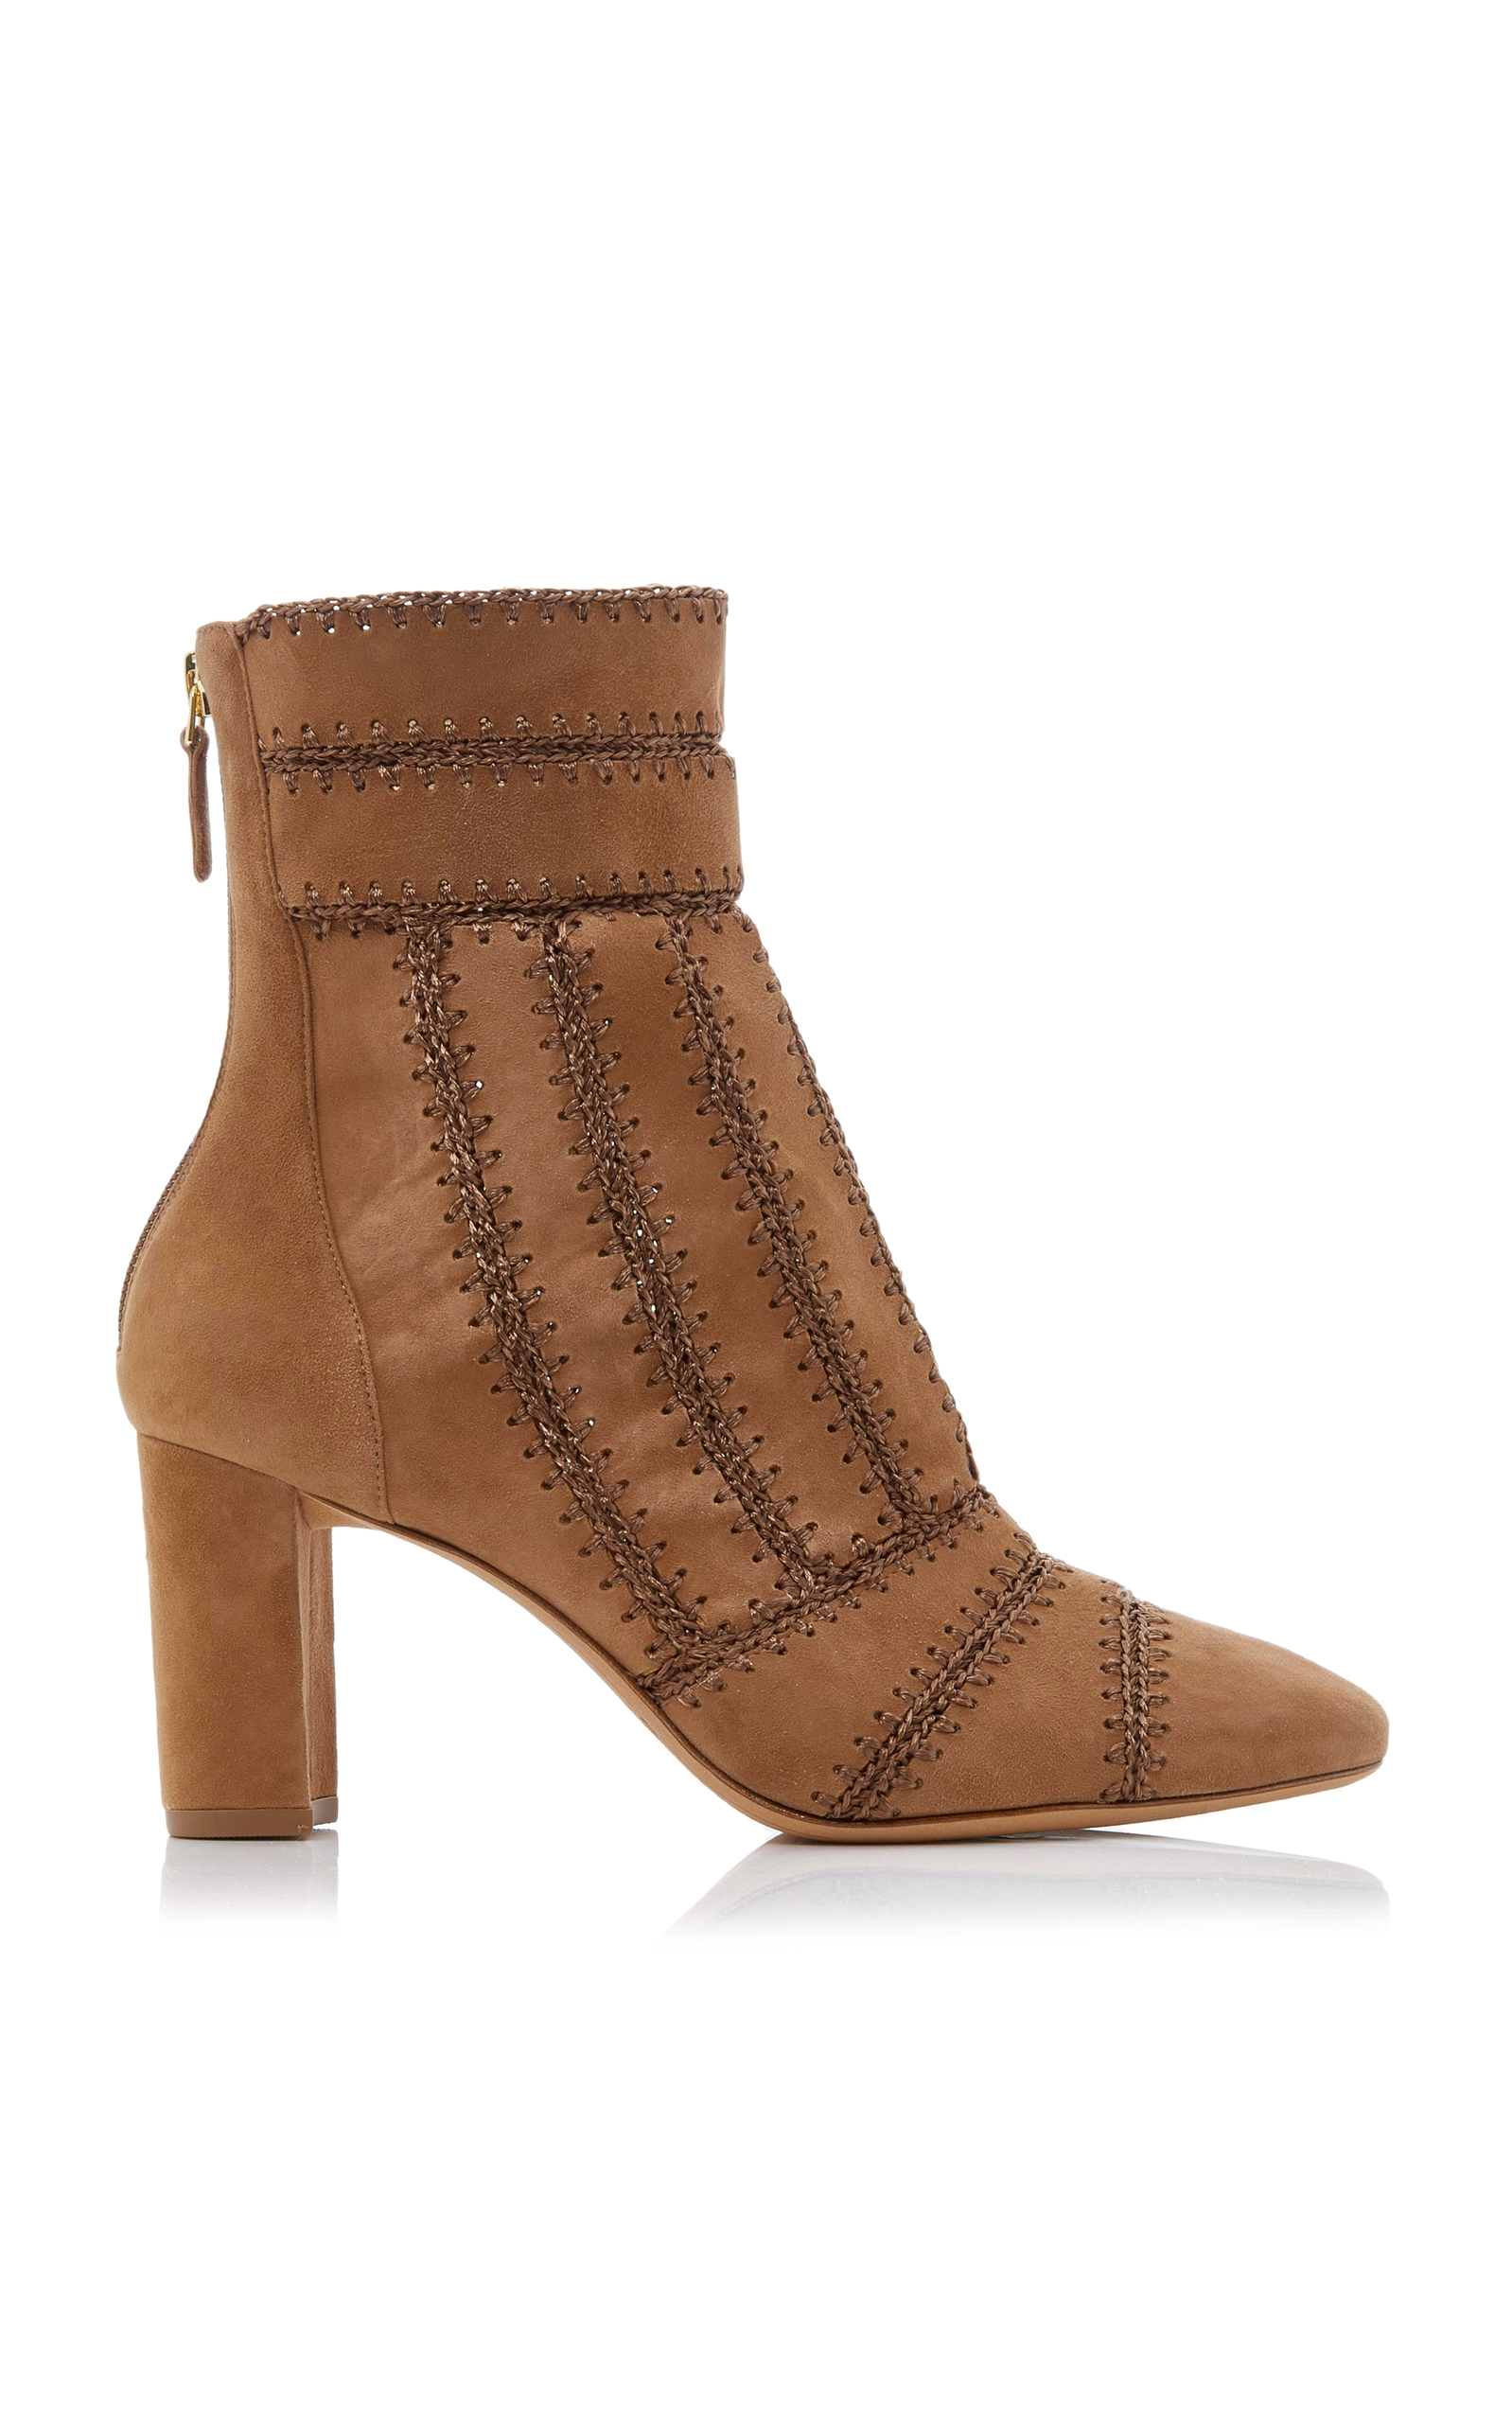 ... Beatriceh Suede Ankle Boots. CLOSE. Loading